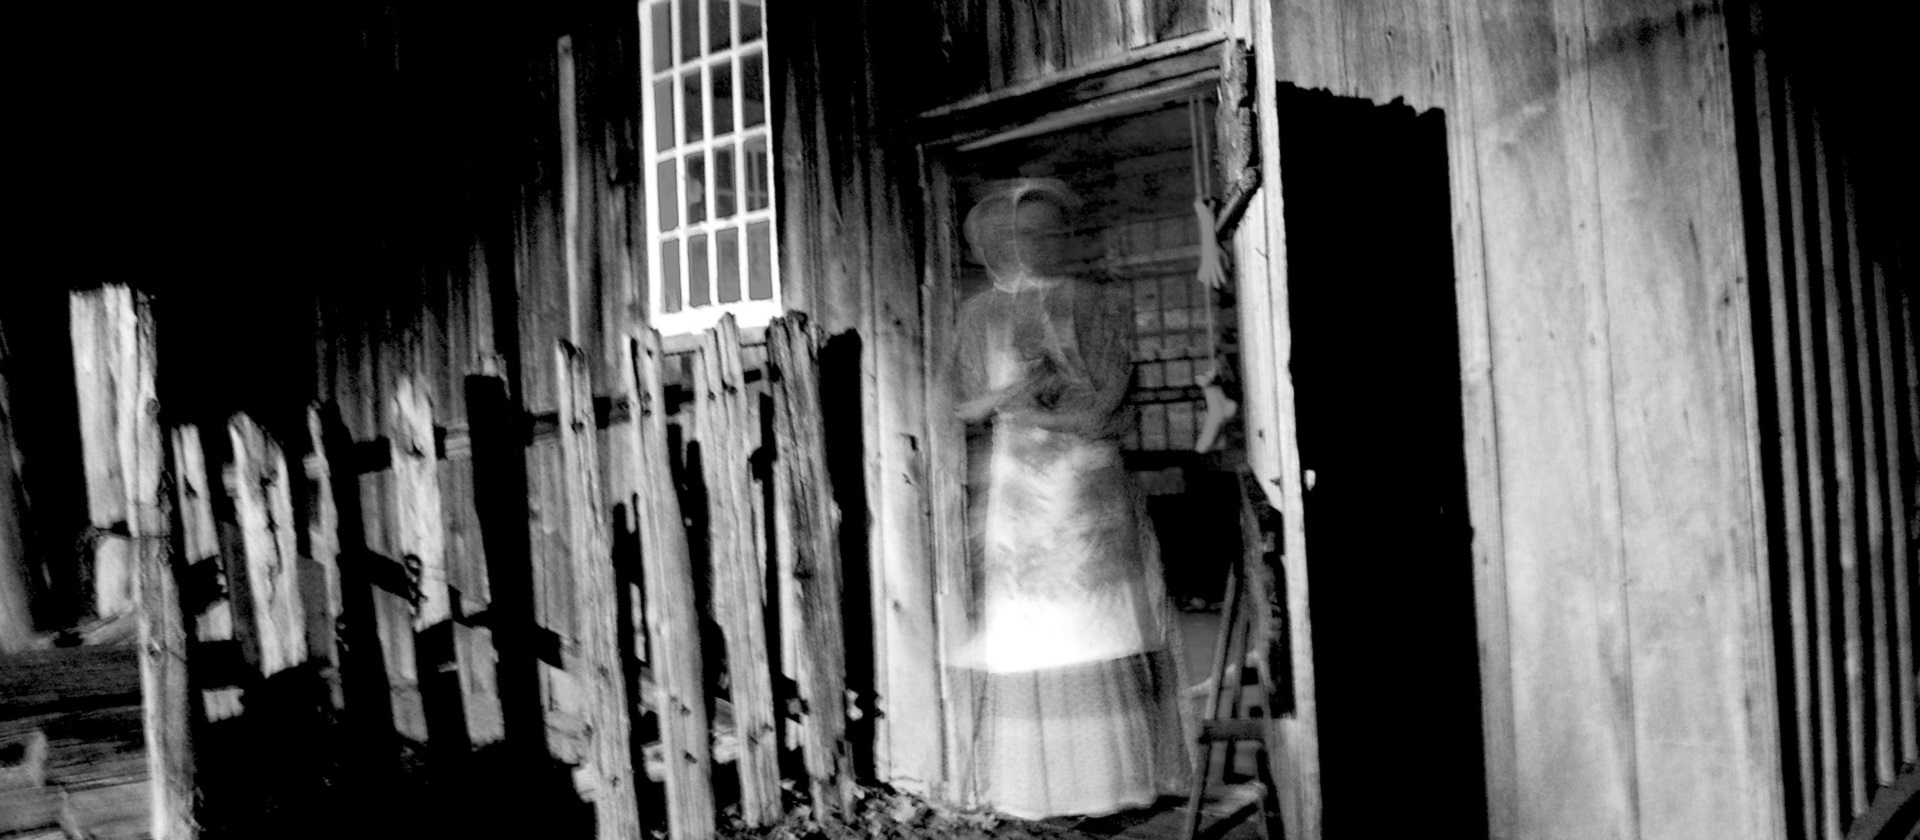 an eerie scene greets a visitor at a Black Creek Pioneer Village Ghost Walk event